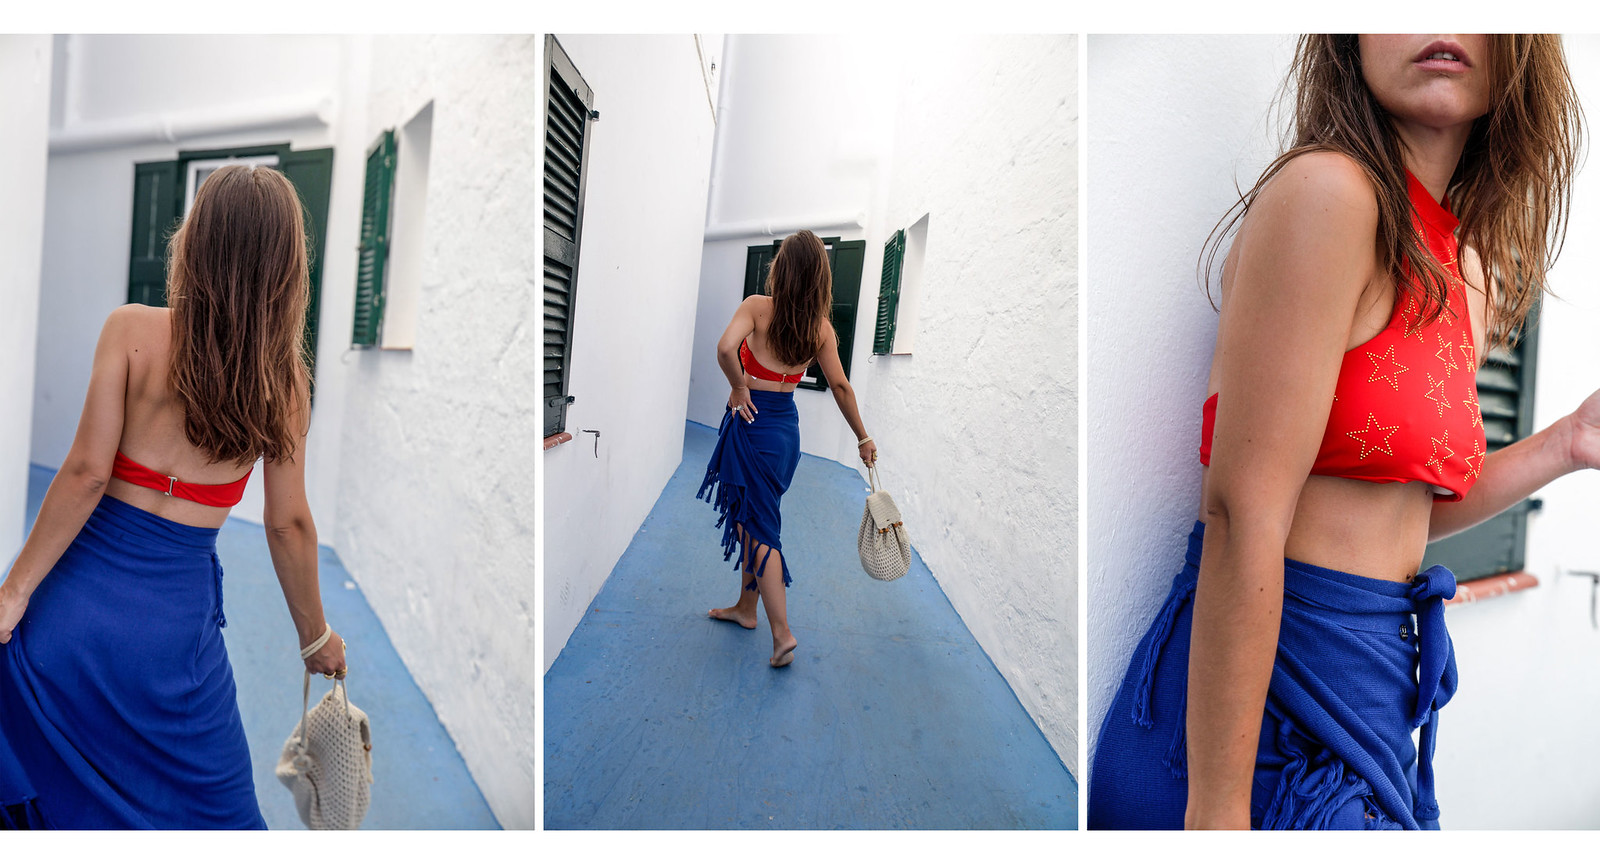 05_pies_descalzos_look_playa_theguestgirl_ruga_beachriot_minorca_blue_red_the_guest_girl_laura_santolaria_influencer